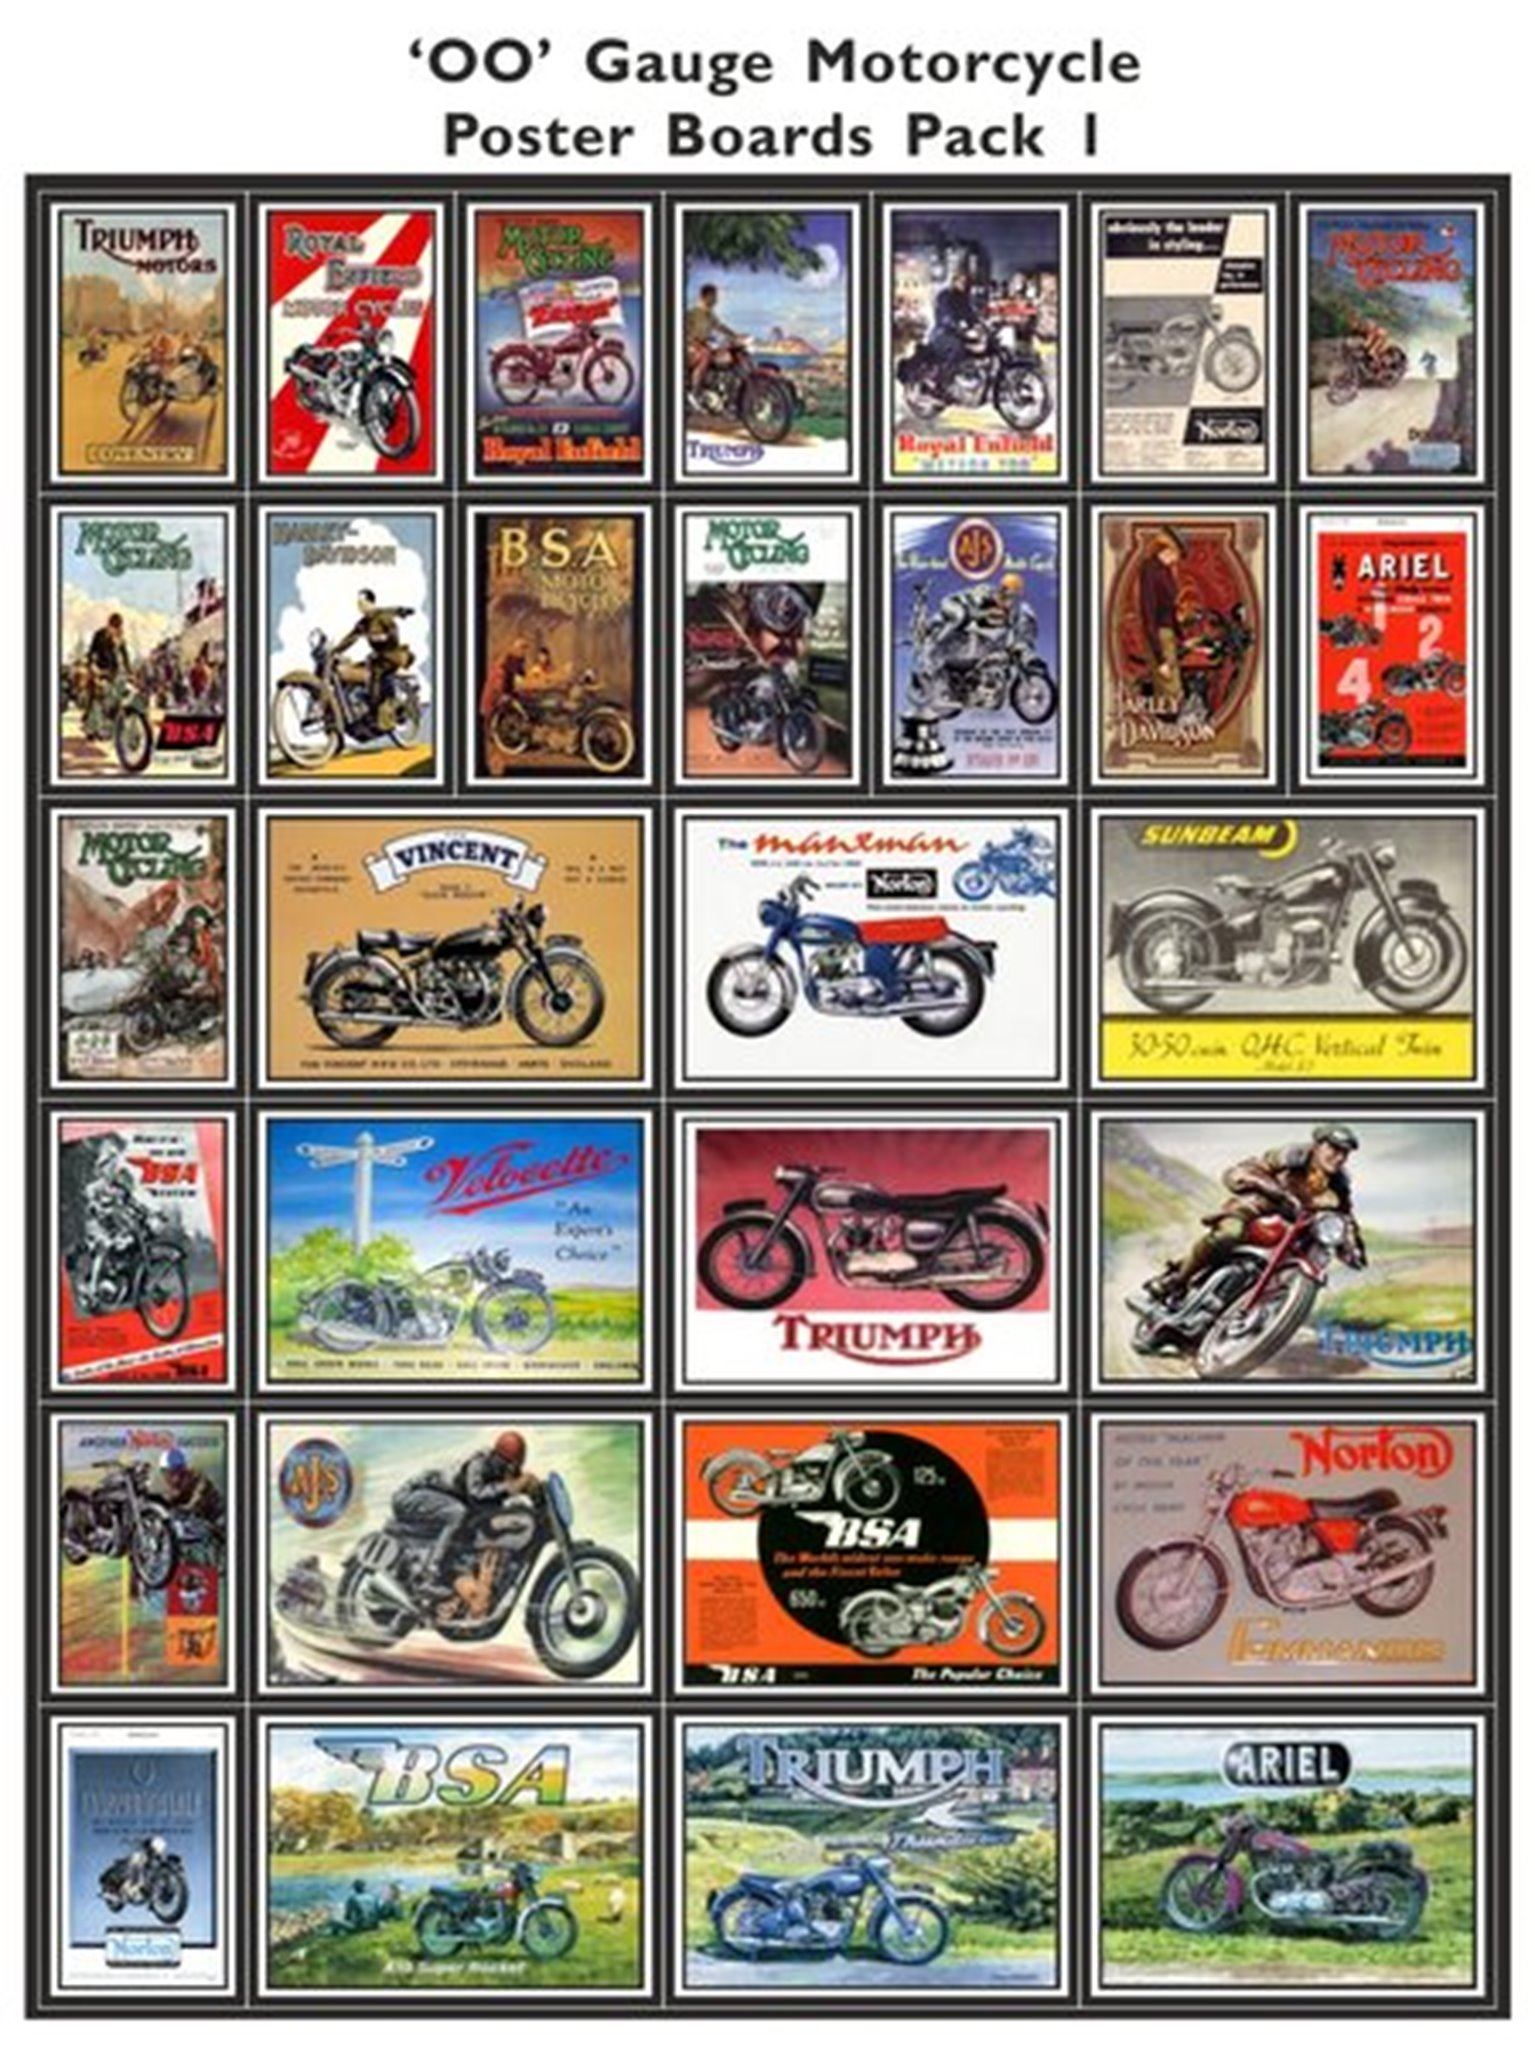 Motorcycle Poster Boards Pack 1